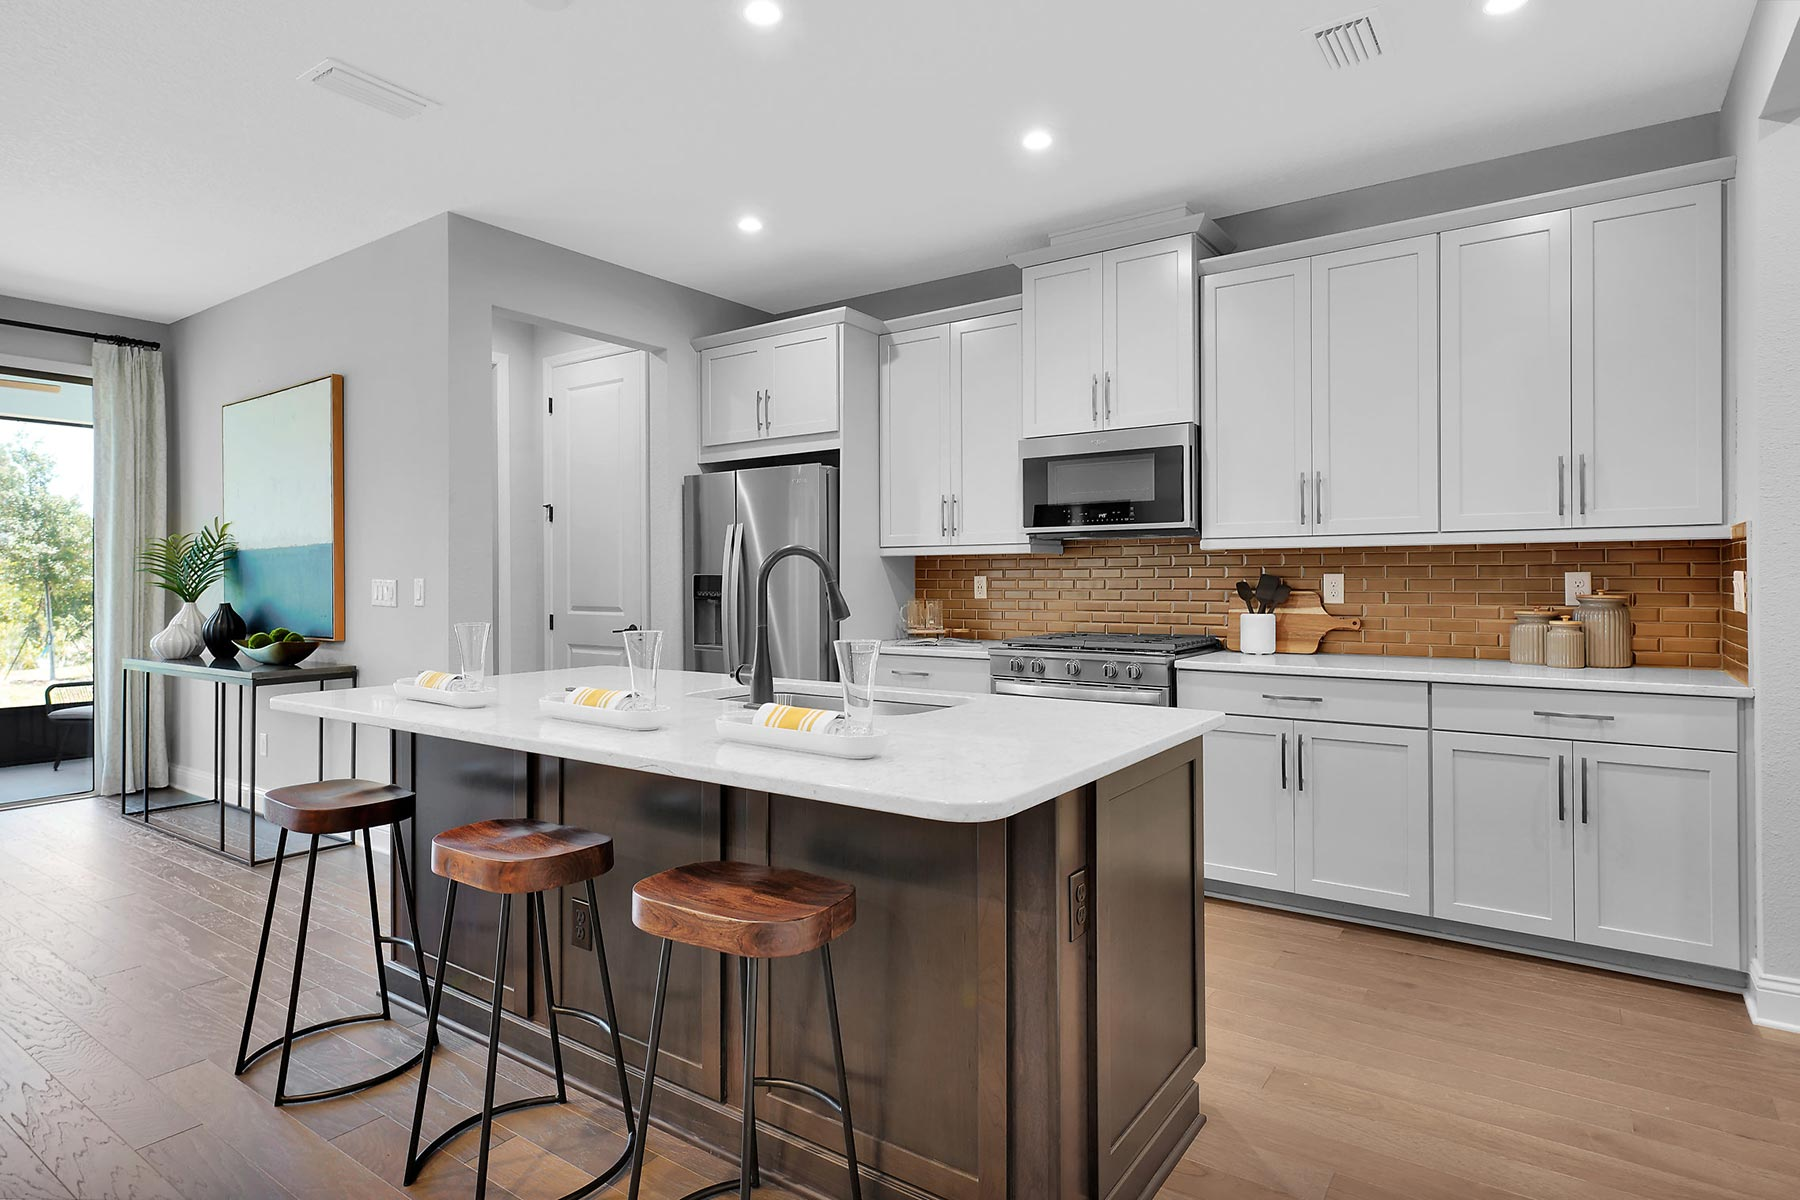 Pablo Cove Kitchen in Jacksonville Florida by Mattamy Homes